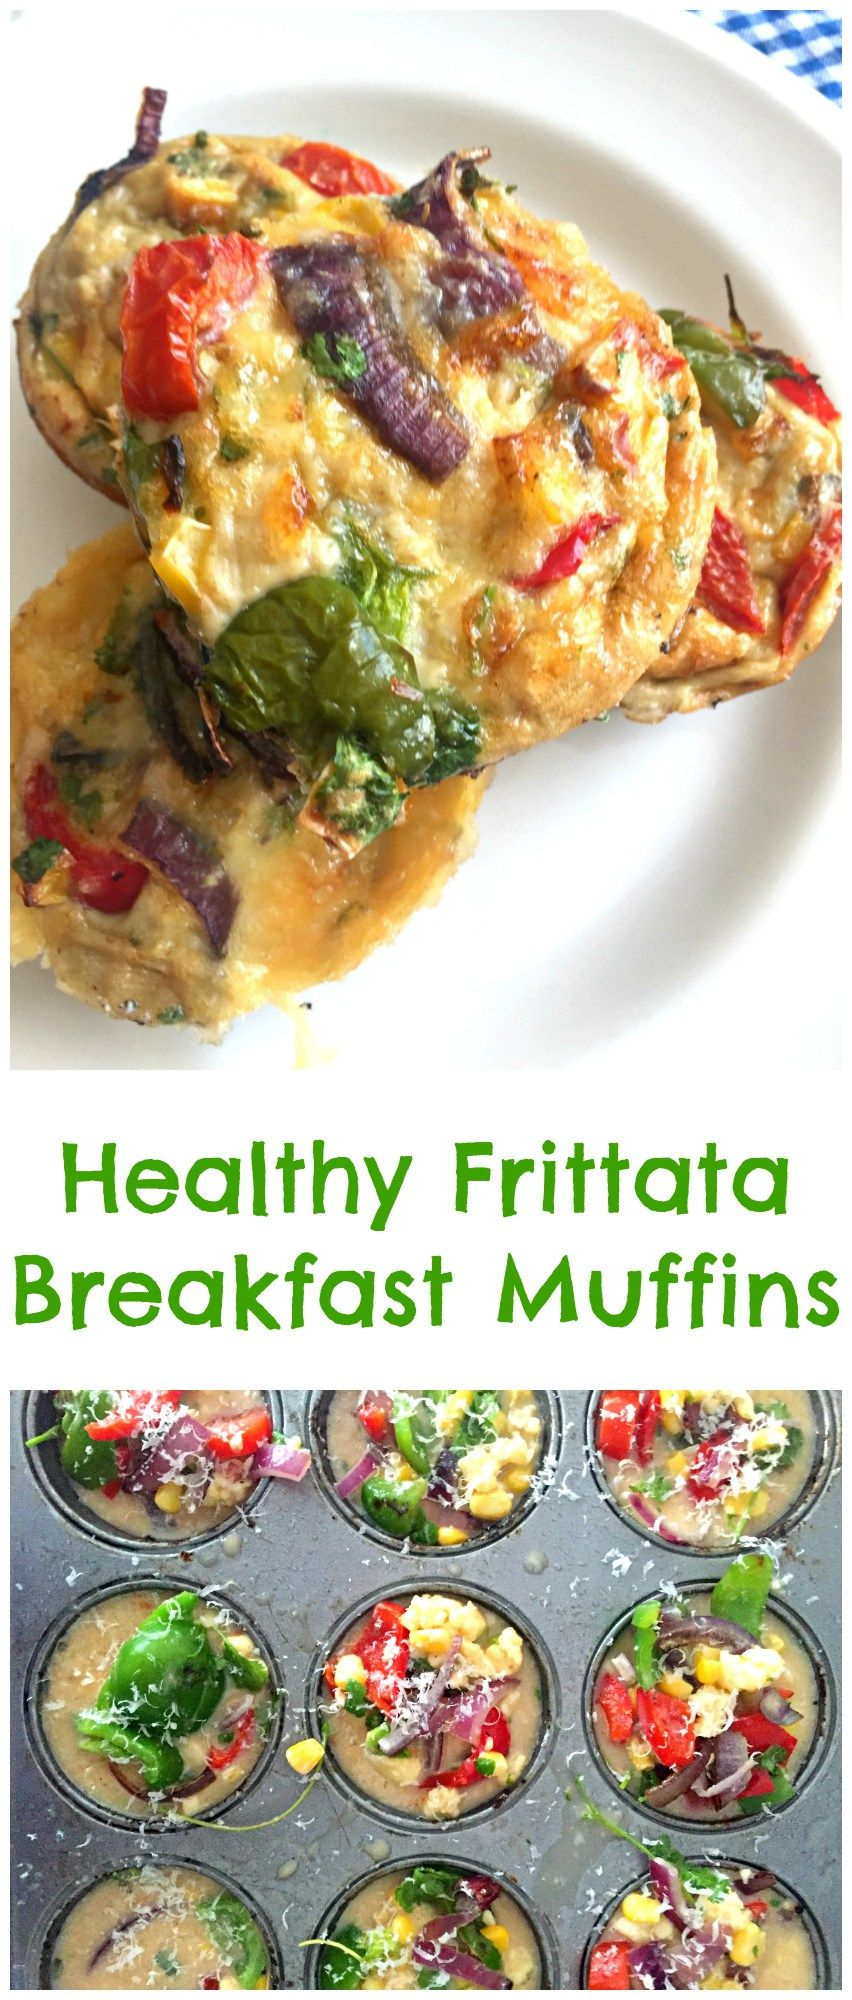 Healthy Frittata Breakfast Muffins | Recipe | Breakfast Recipes | Breakfast muffins, Muffins ...